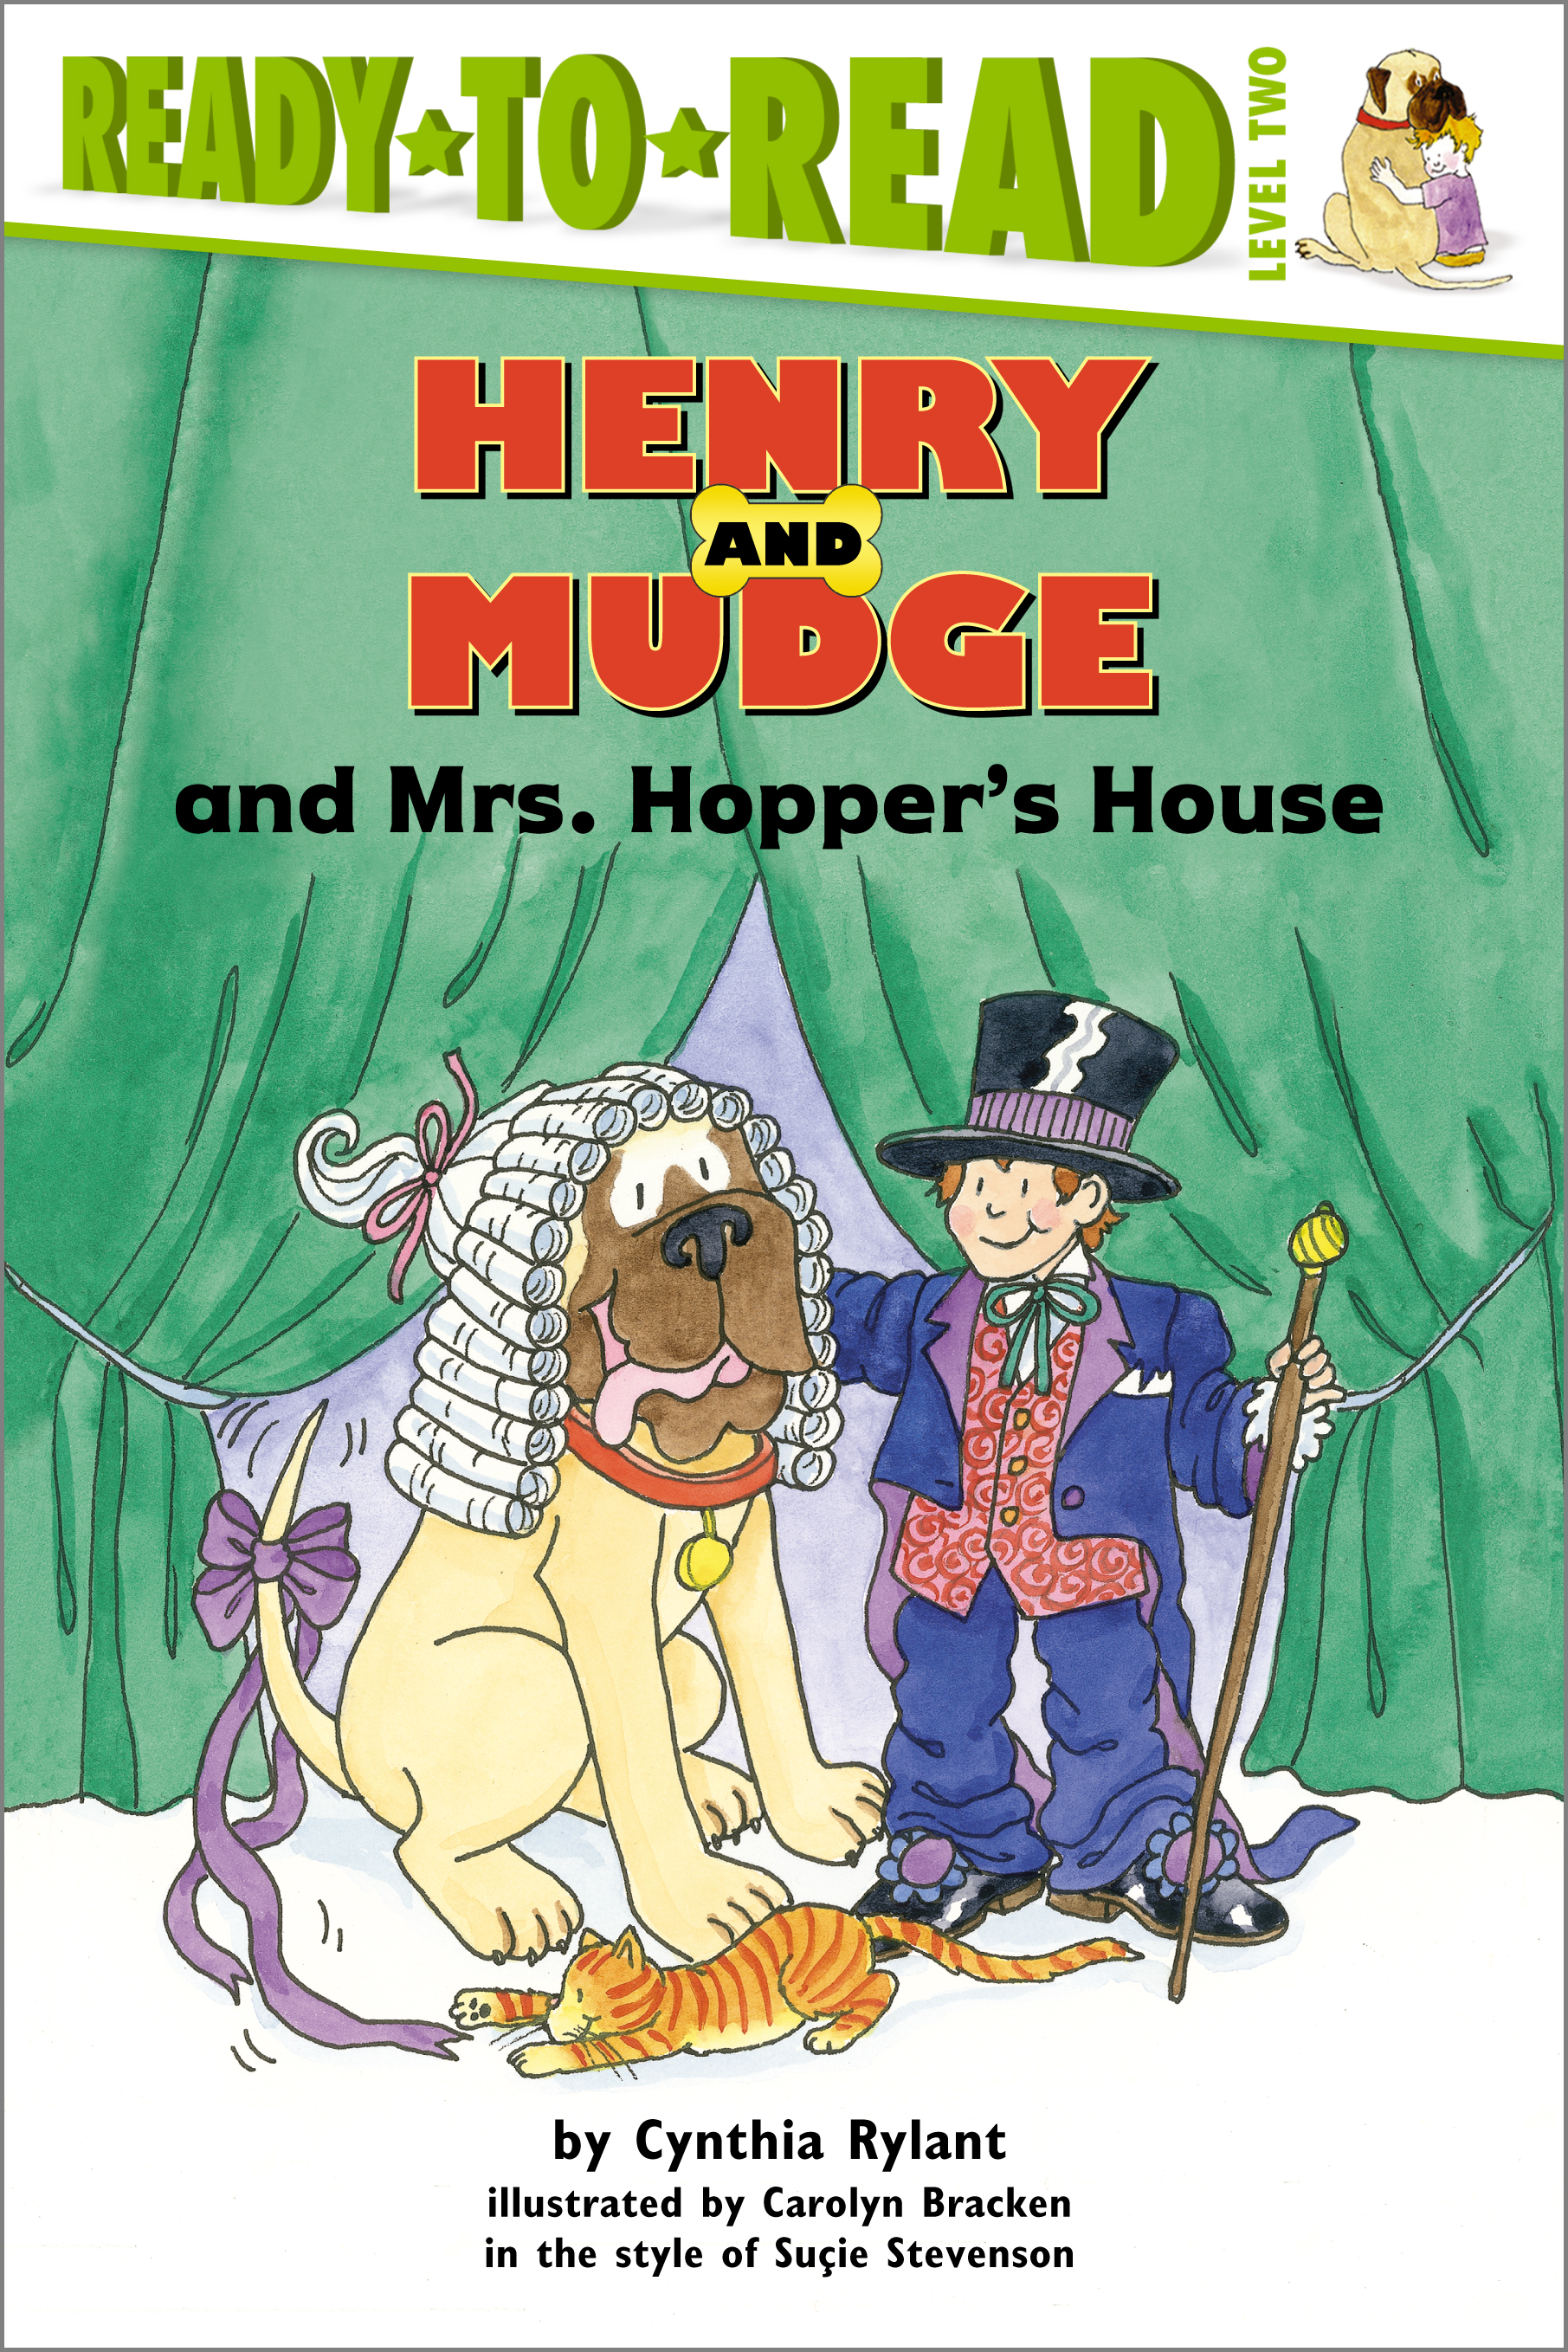 Book Cover Image (jpg): Henry and Mudge and Mrs. Hopper's House